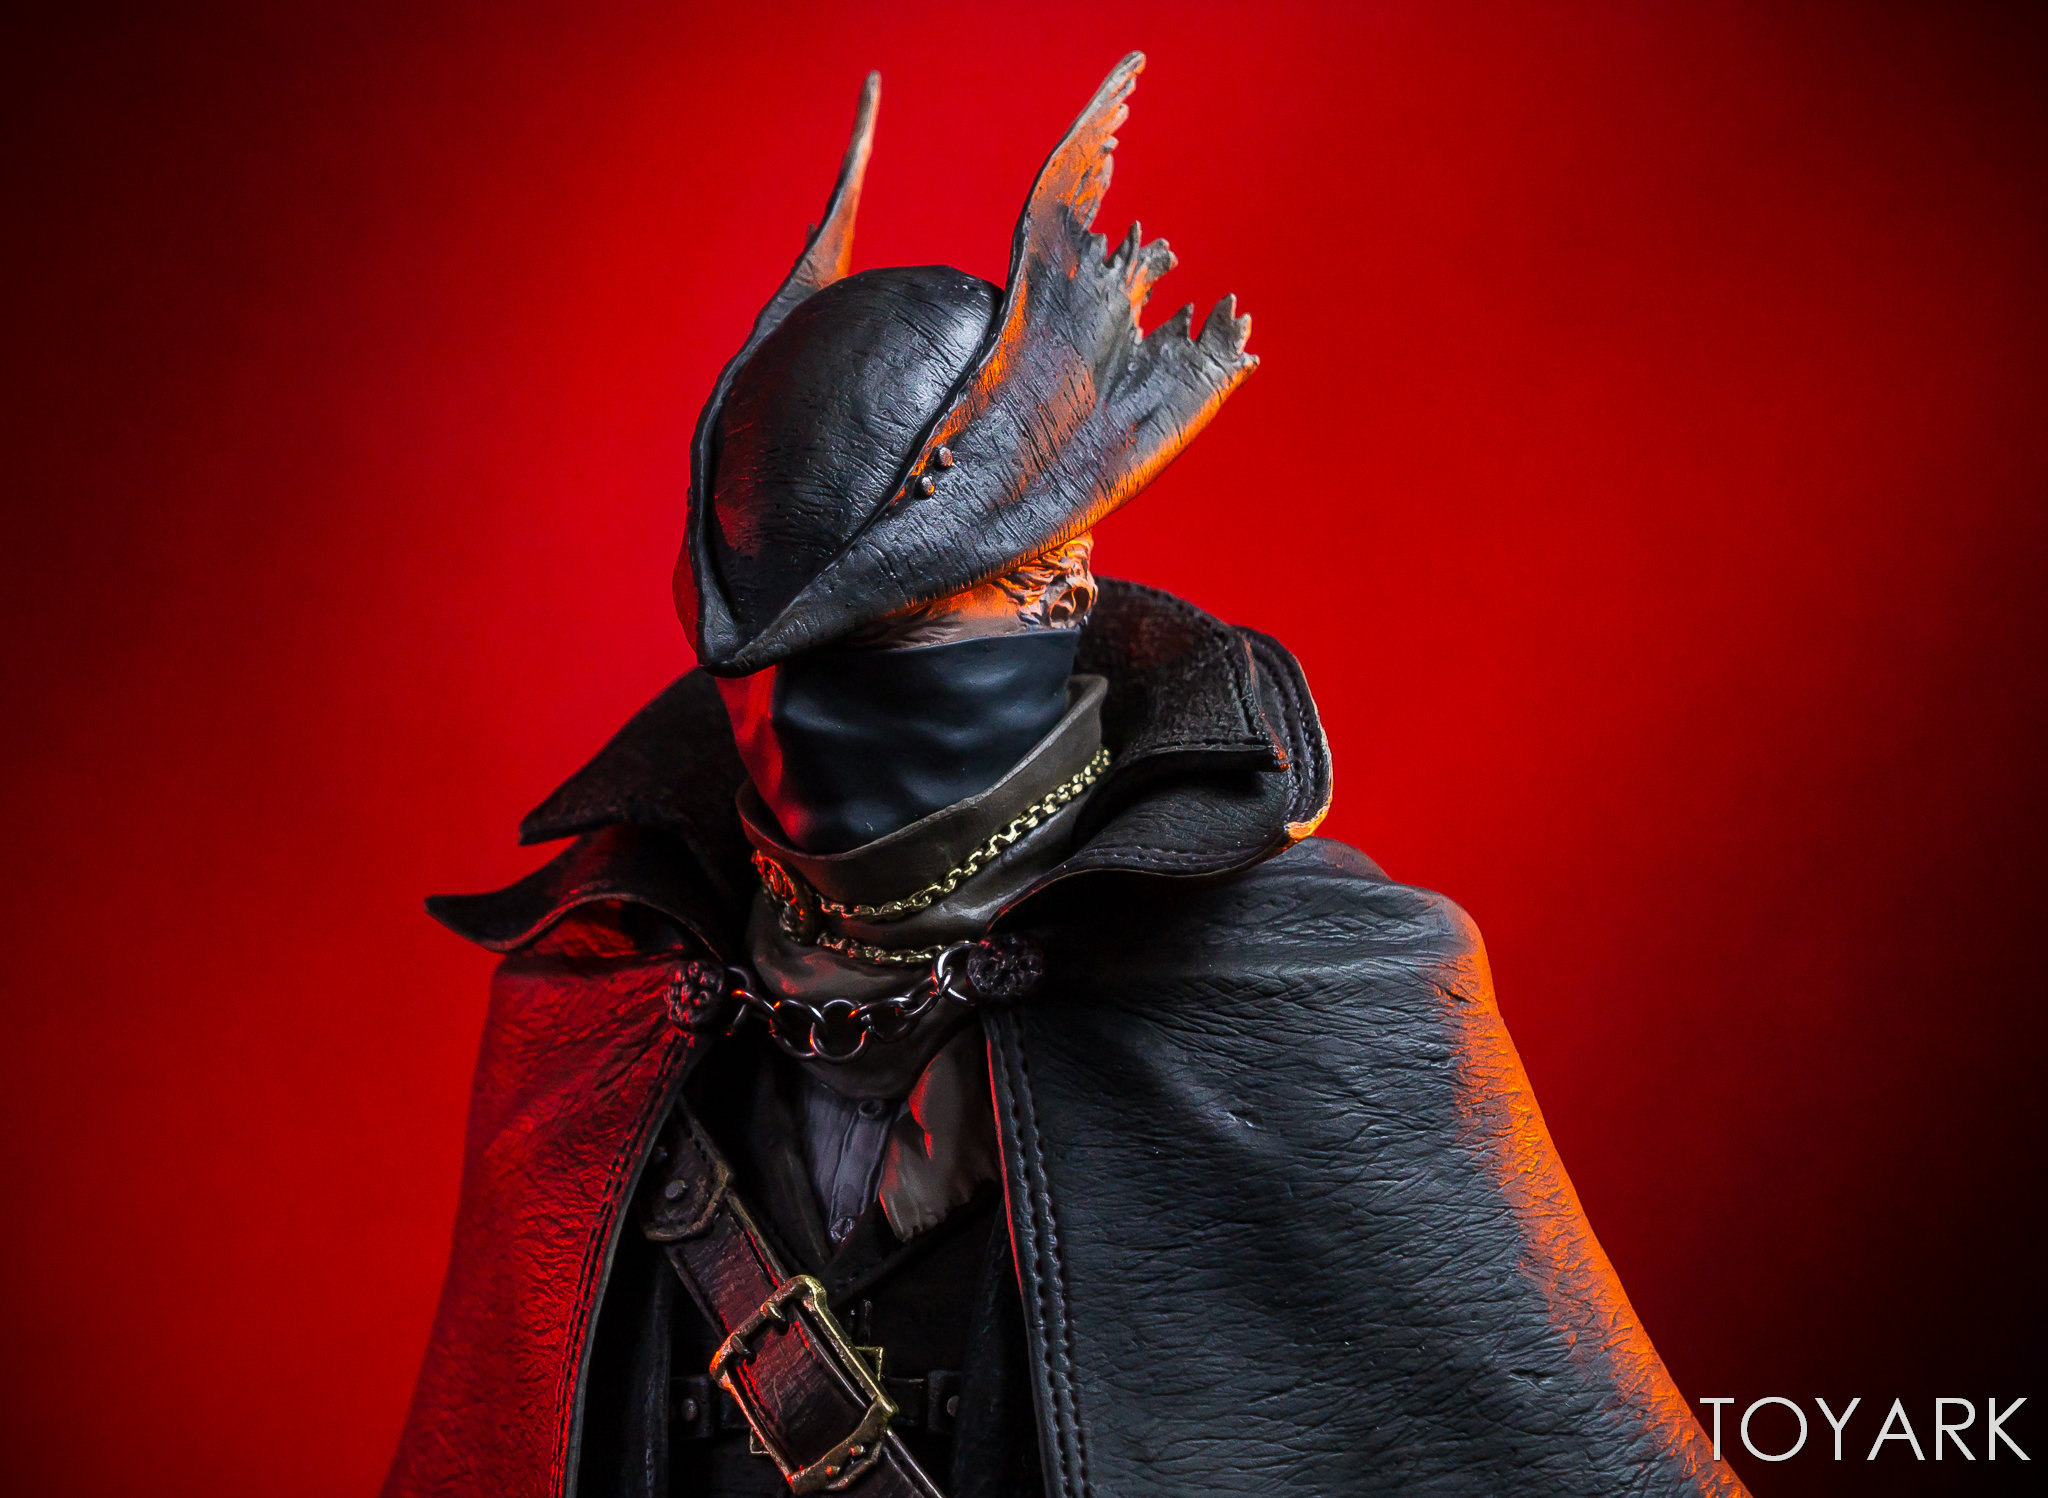 https://news.toyark.com/wp-content/uploads/sites/4/2018/07/Gecco-Bloodborne-Old-Hunter-031.jpg